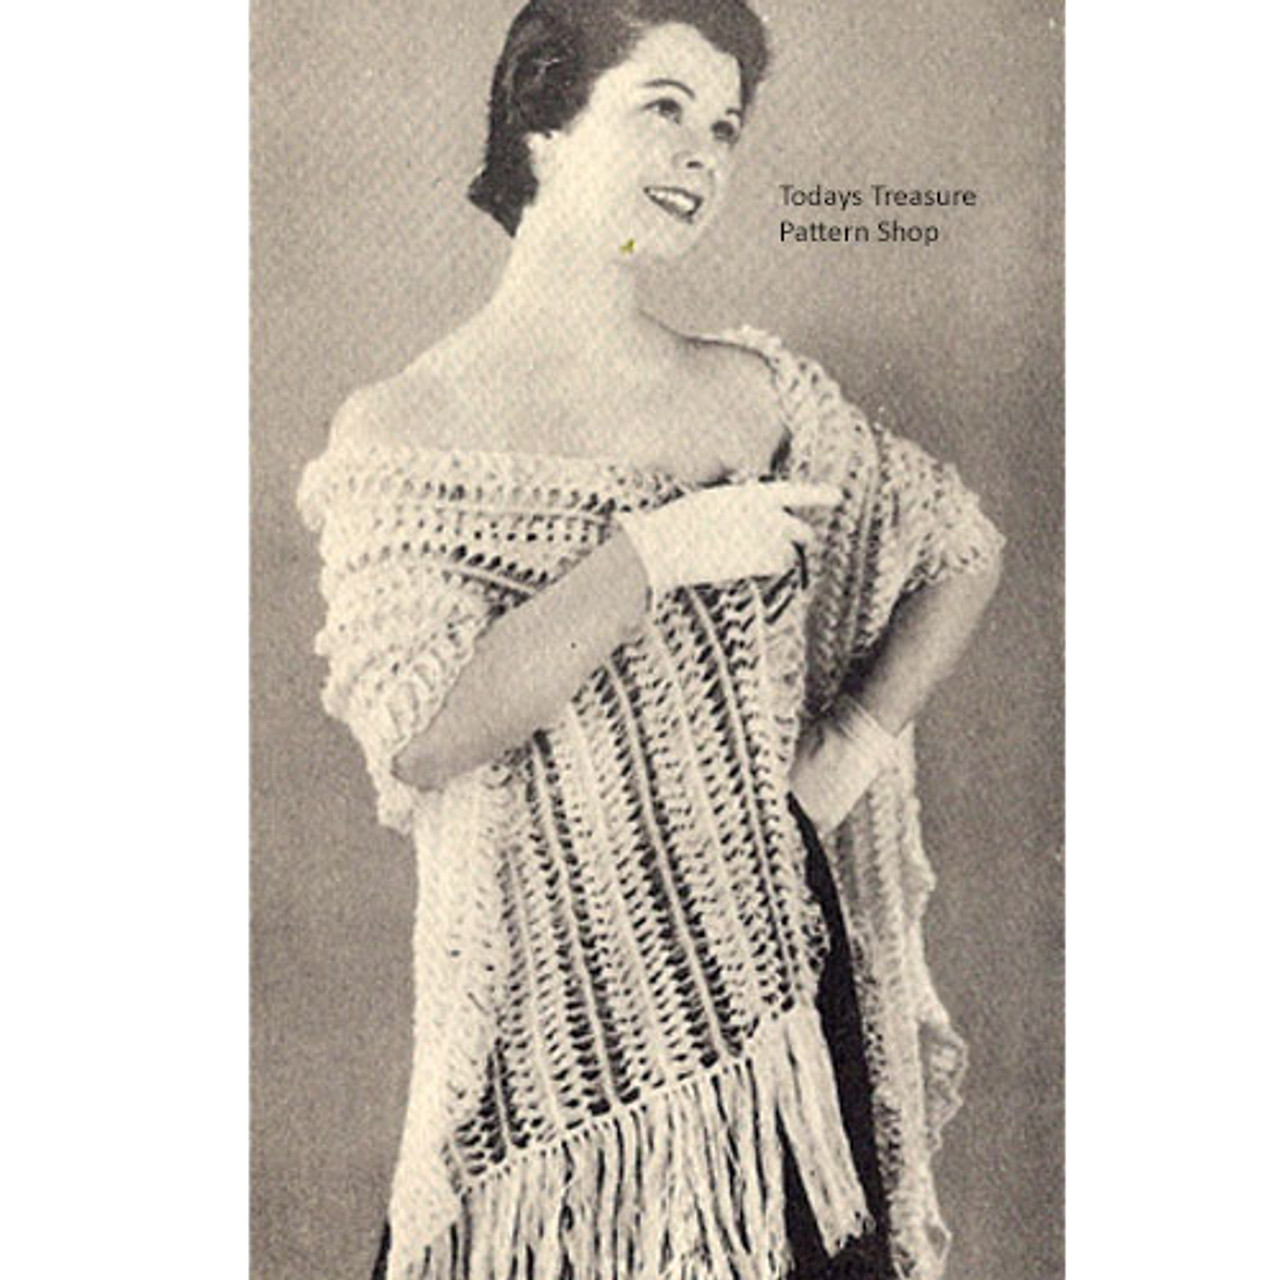 Hairpin Lace Striped Stole Pattern, Vintage 1950s